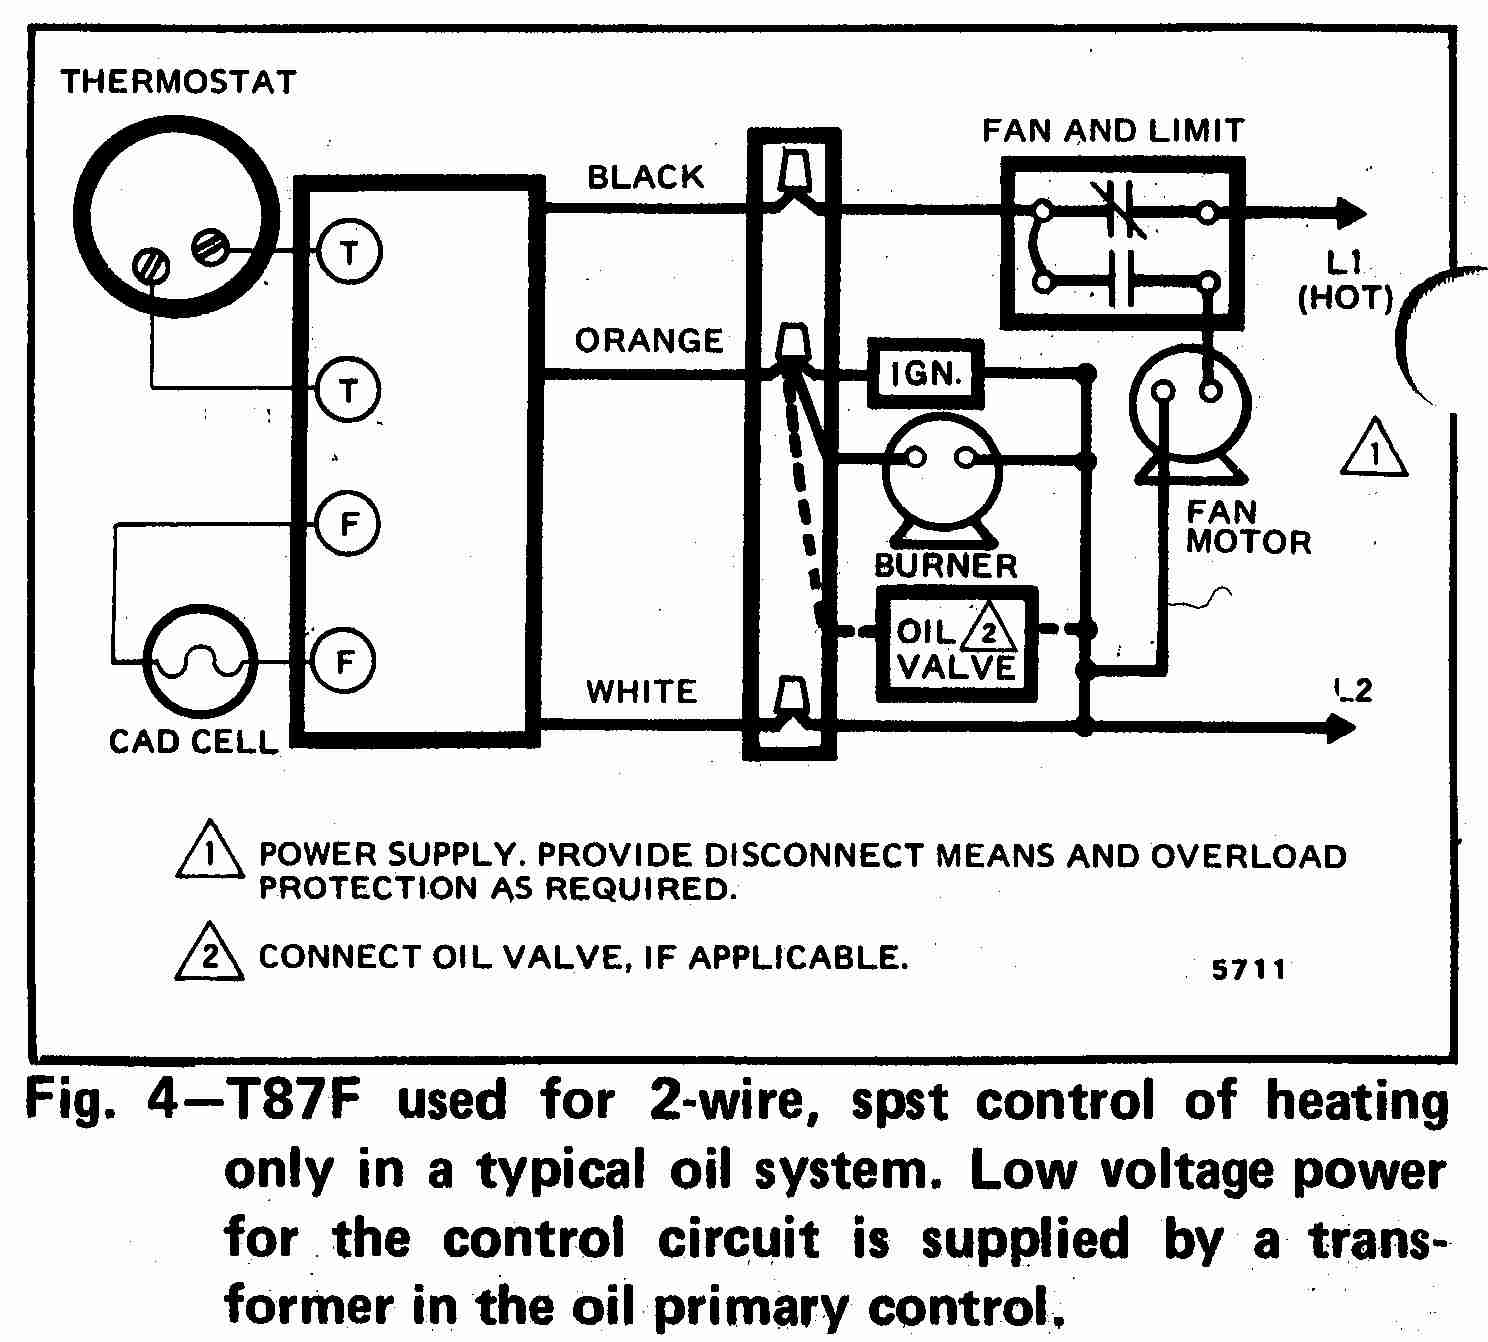 TT_T87F_0002_2W_DJF room thermostat wiring diagram boiler thermostat wiring diagram Low Voltage Wiring Guide at honlapkeszites.co